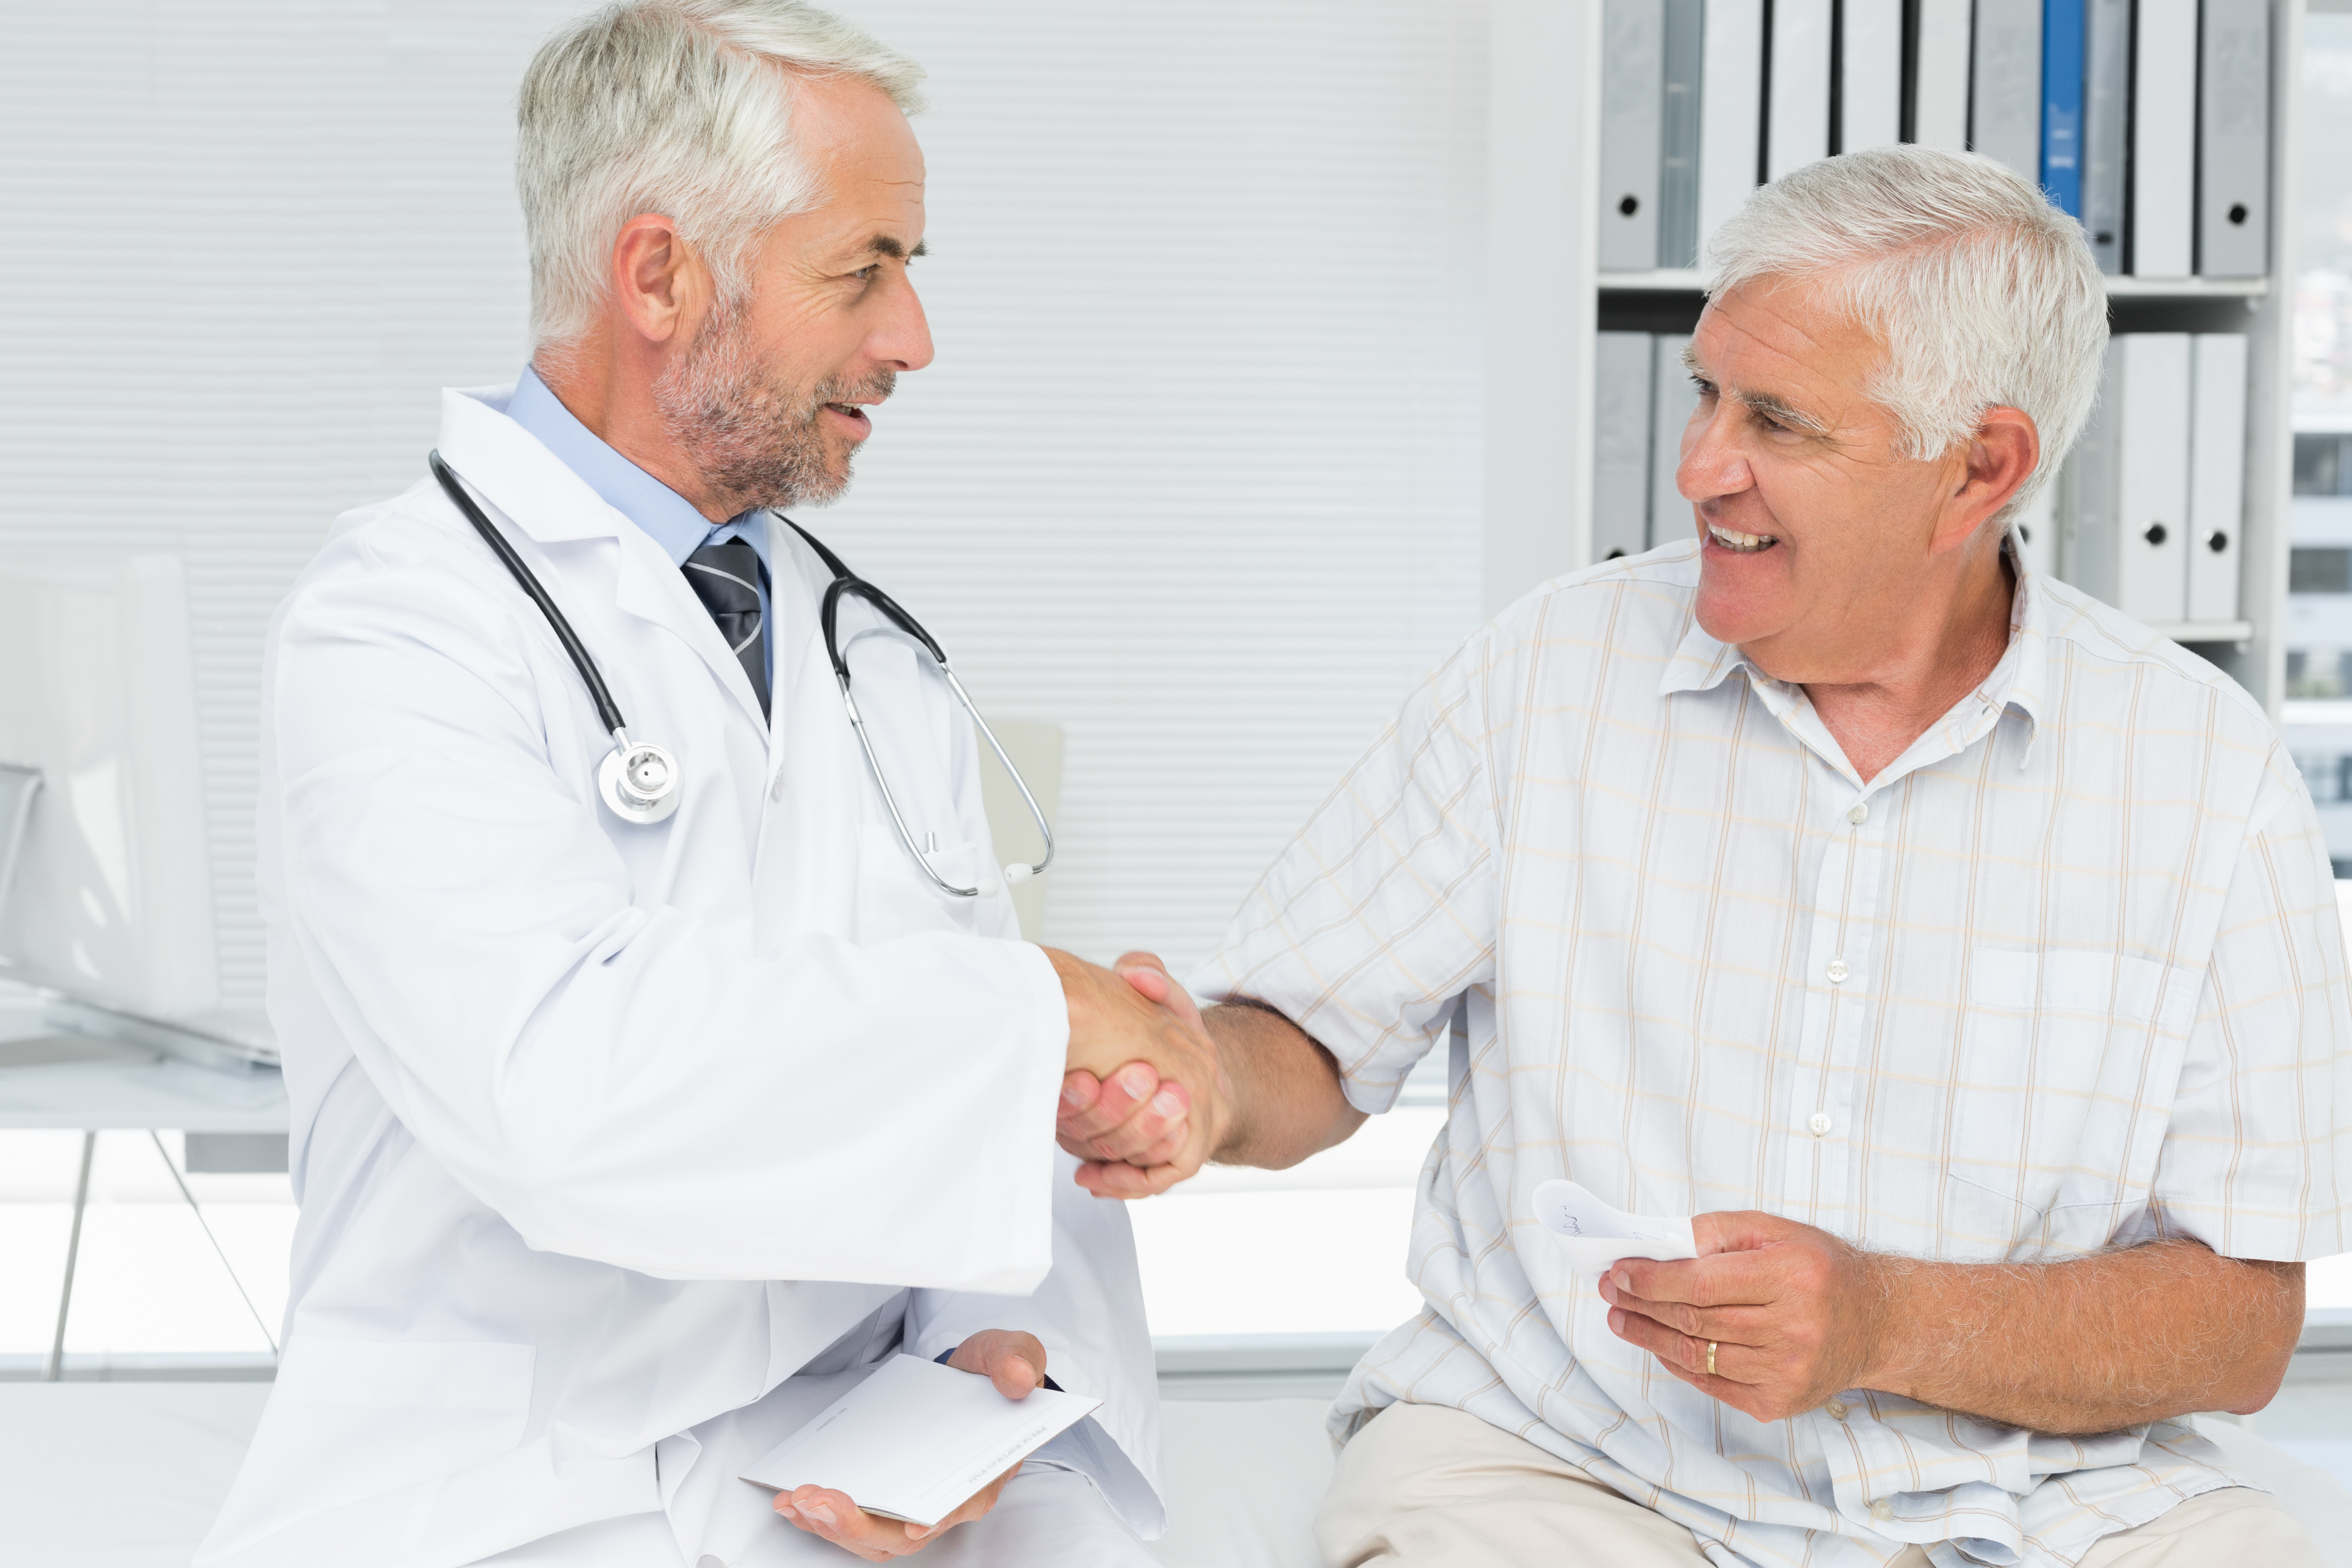 Concierge Medicine: Fighting Back With Highly-Personalized Patient Care